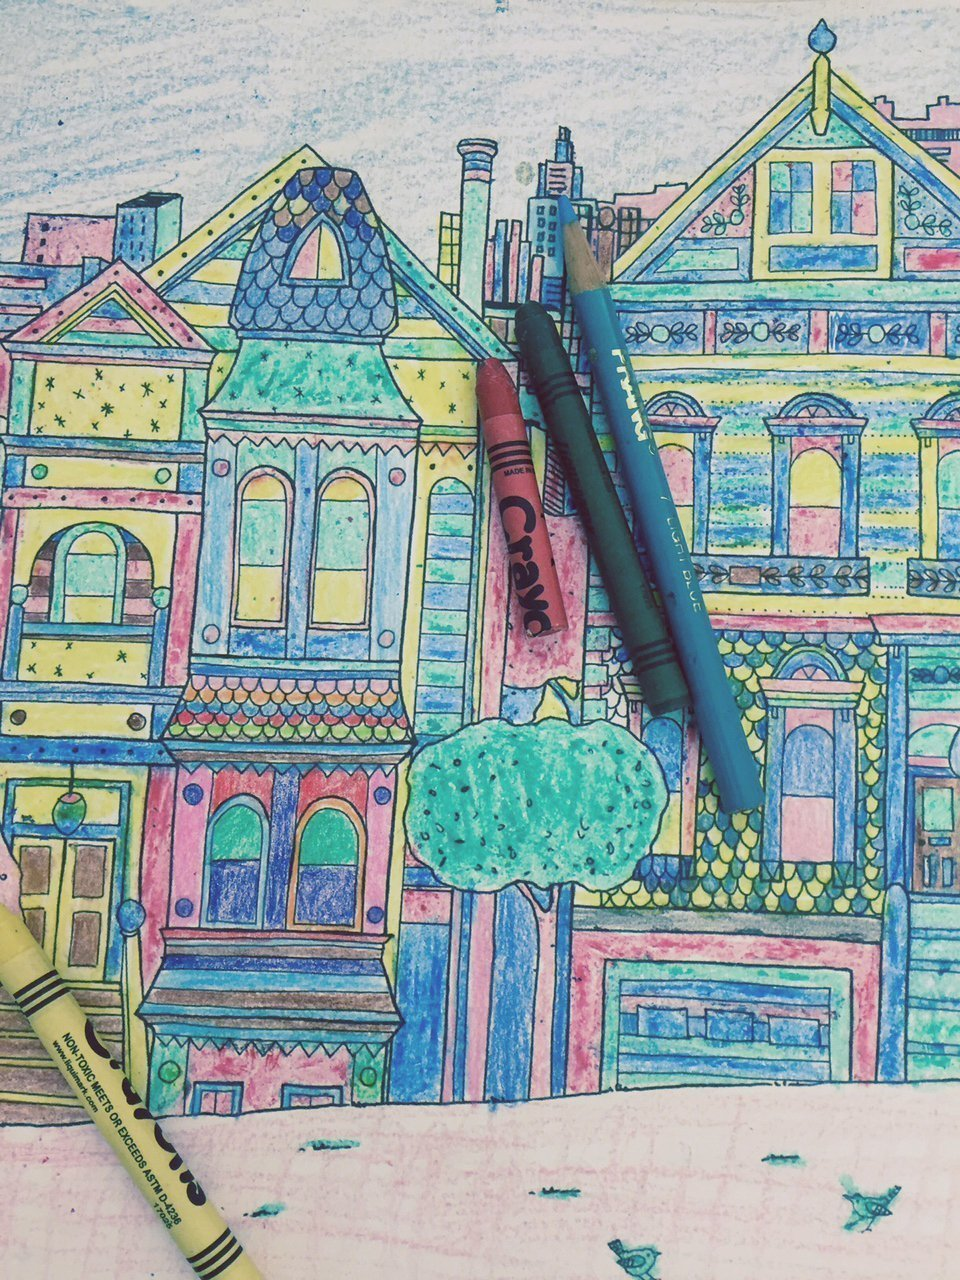 Trendy But Calm Adult Coloring Books Selling Like Crazy